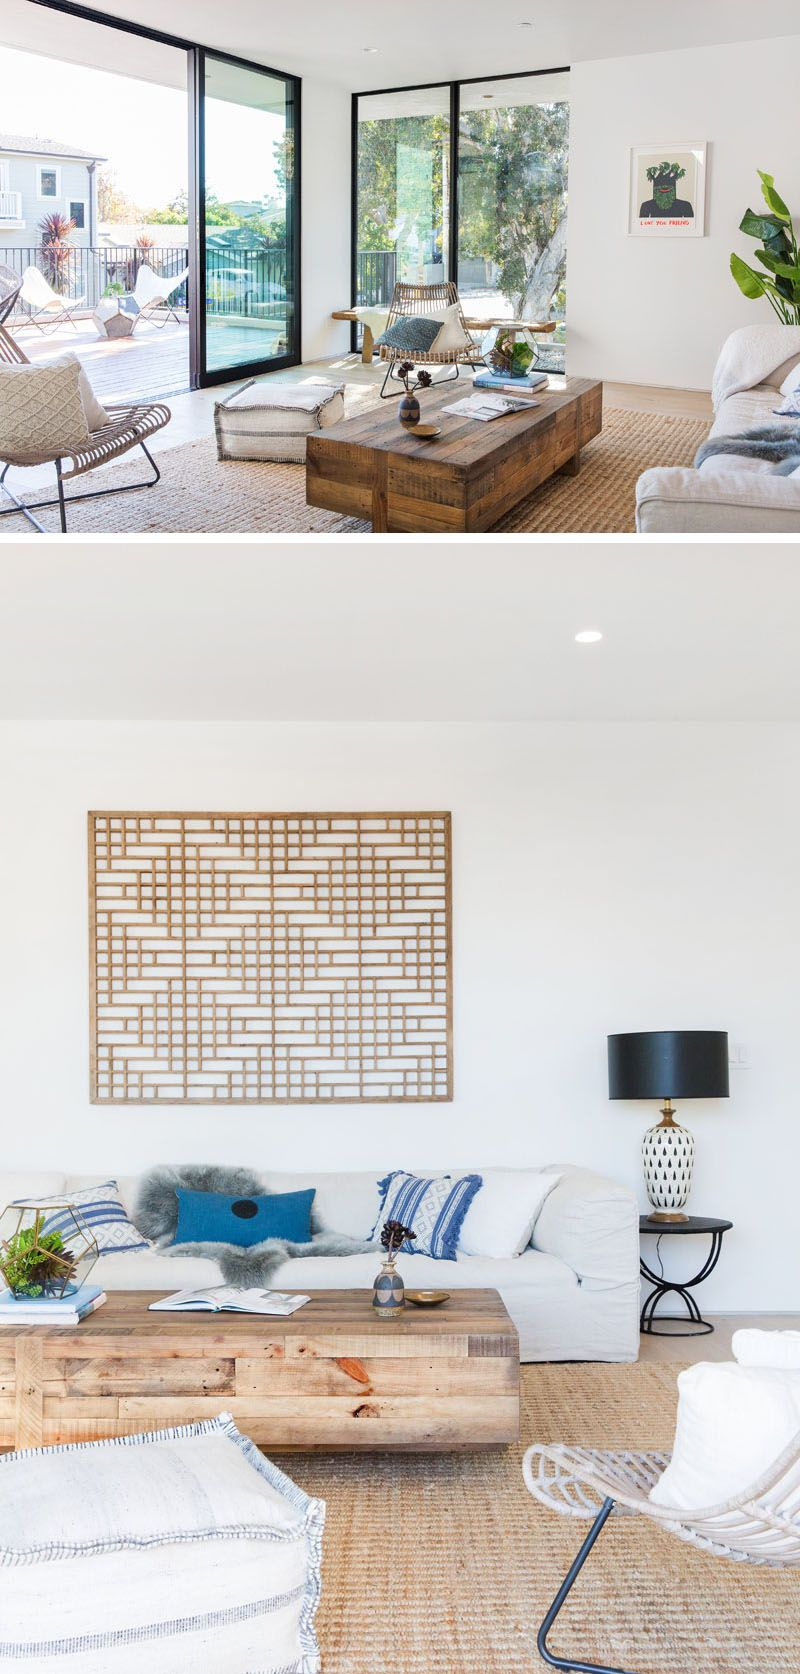 The 5th Street Residence By Electric Bowery